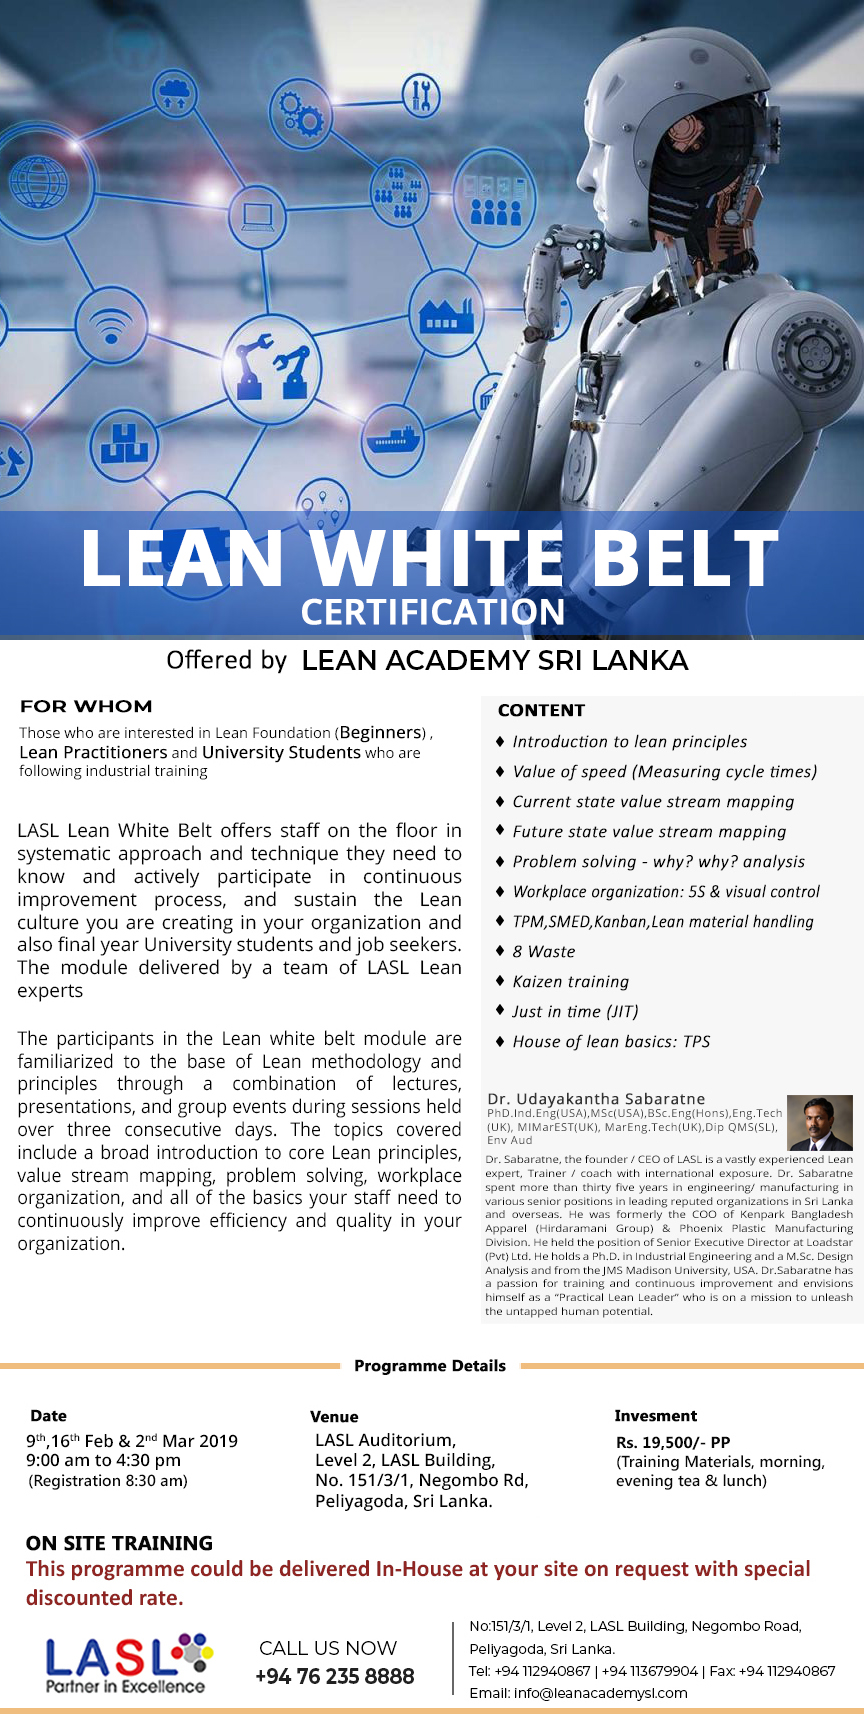 Lean White Belt Certification 5th Batch - 09th Feb 2019